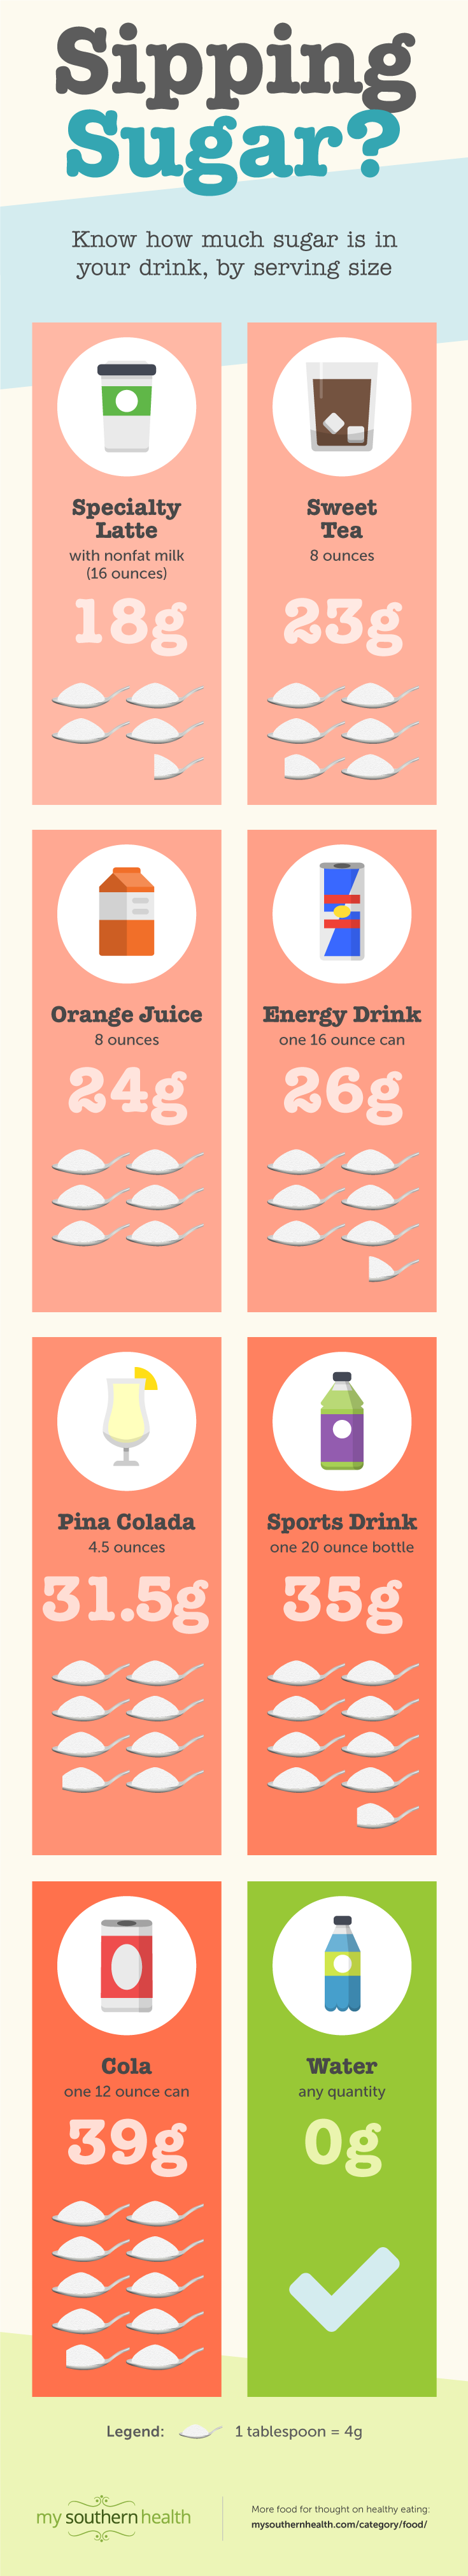 900-2902-MSH-Sugar-Beverages-Infographic-MK-V2